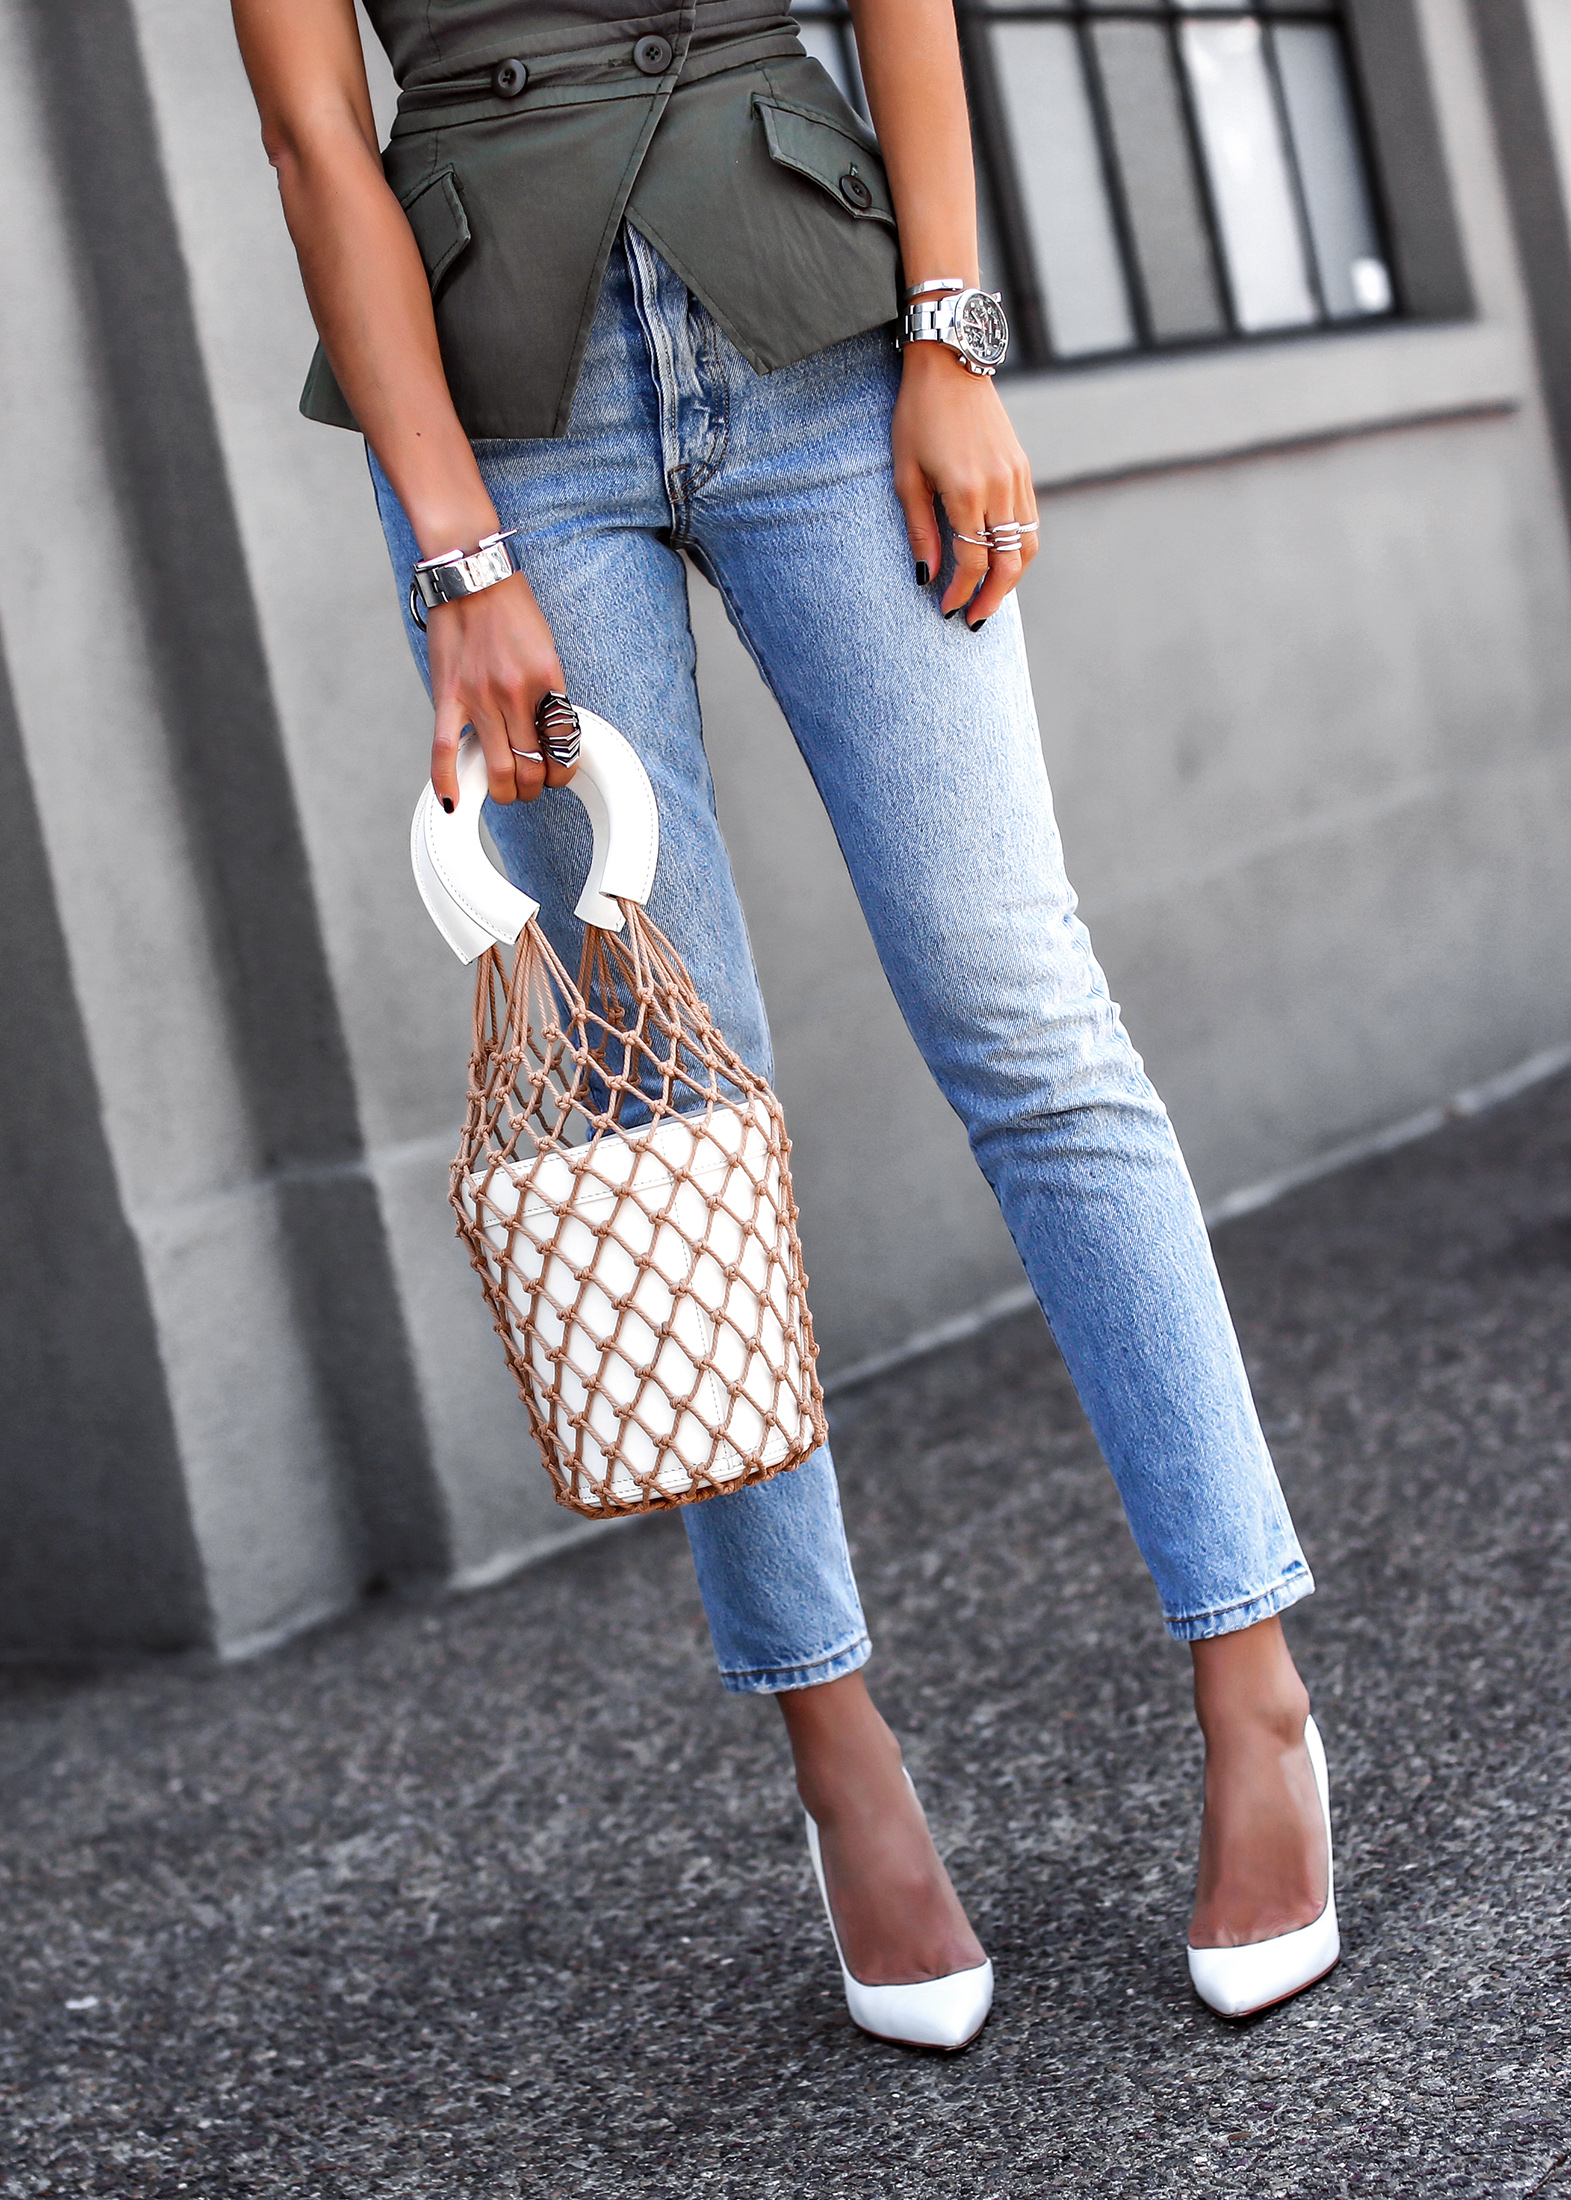 Marissa Webb Vest Levis Jeans Staud Bucket Bag Christian Louboutin White Pumps Spring Fashion Must Haves.jpg